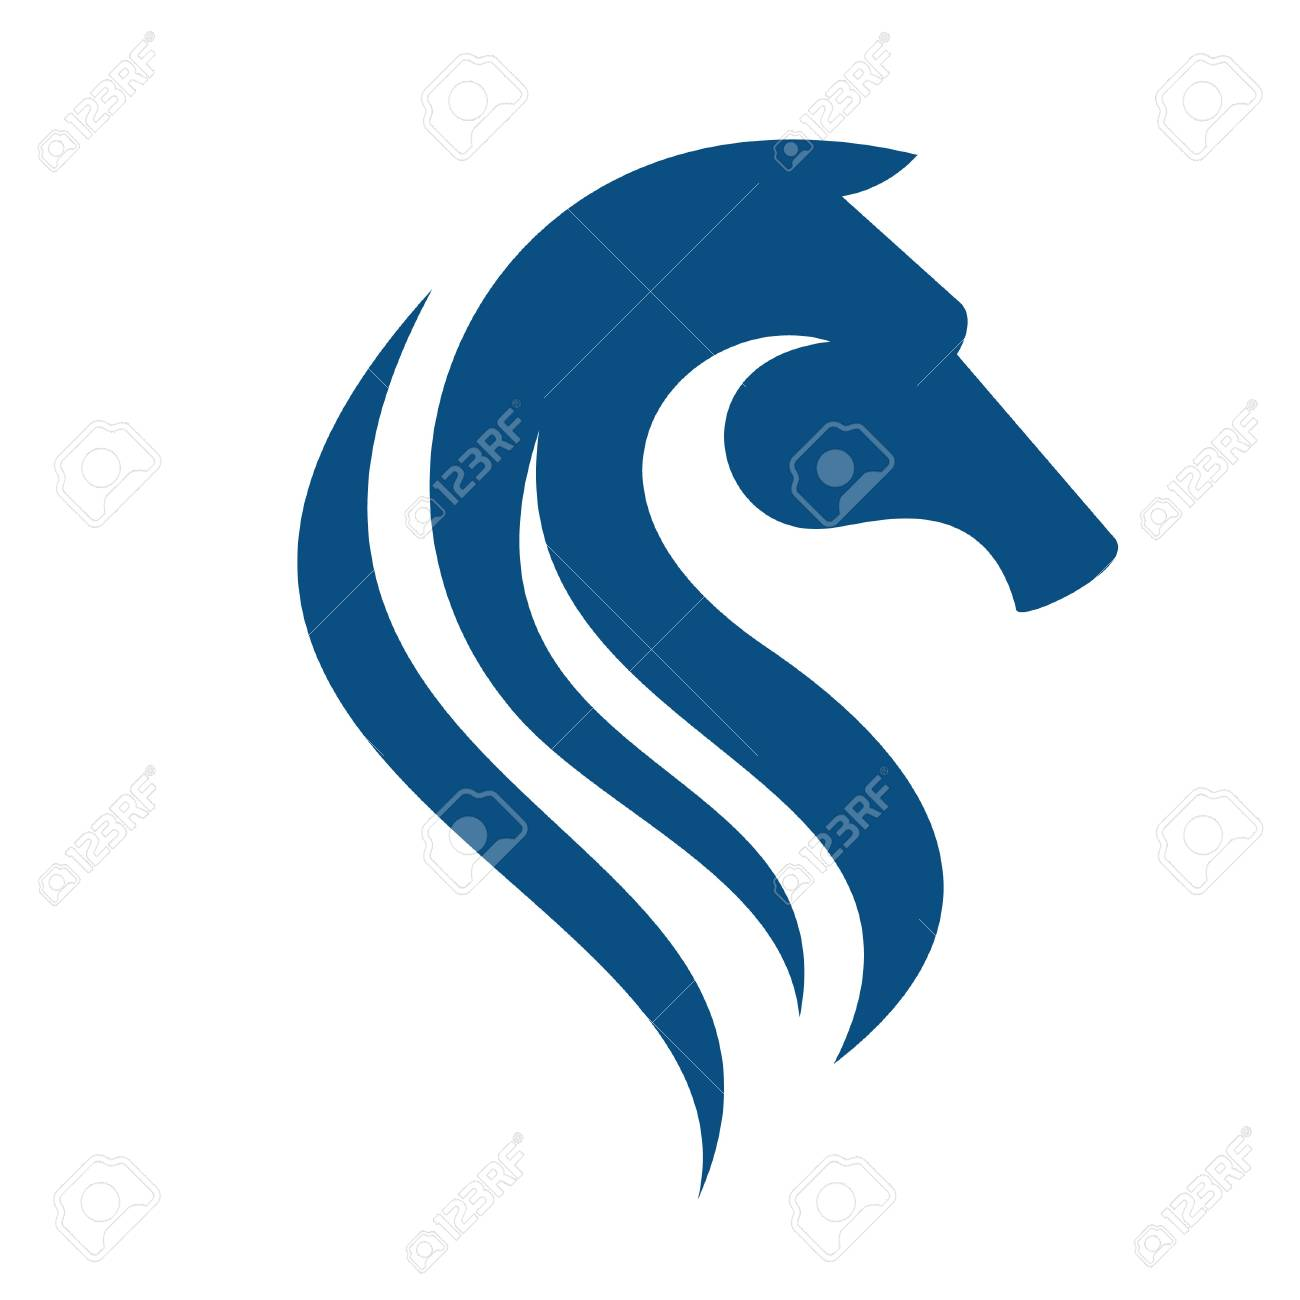 horse head logo sport team or club mascot royalty free cliparts rh 123rf com horse head logo free horse head logos for sale